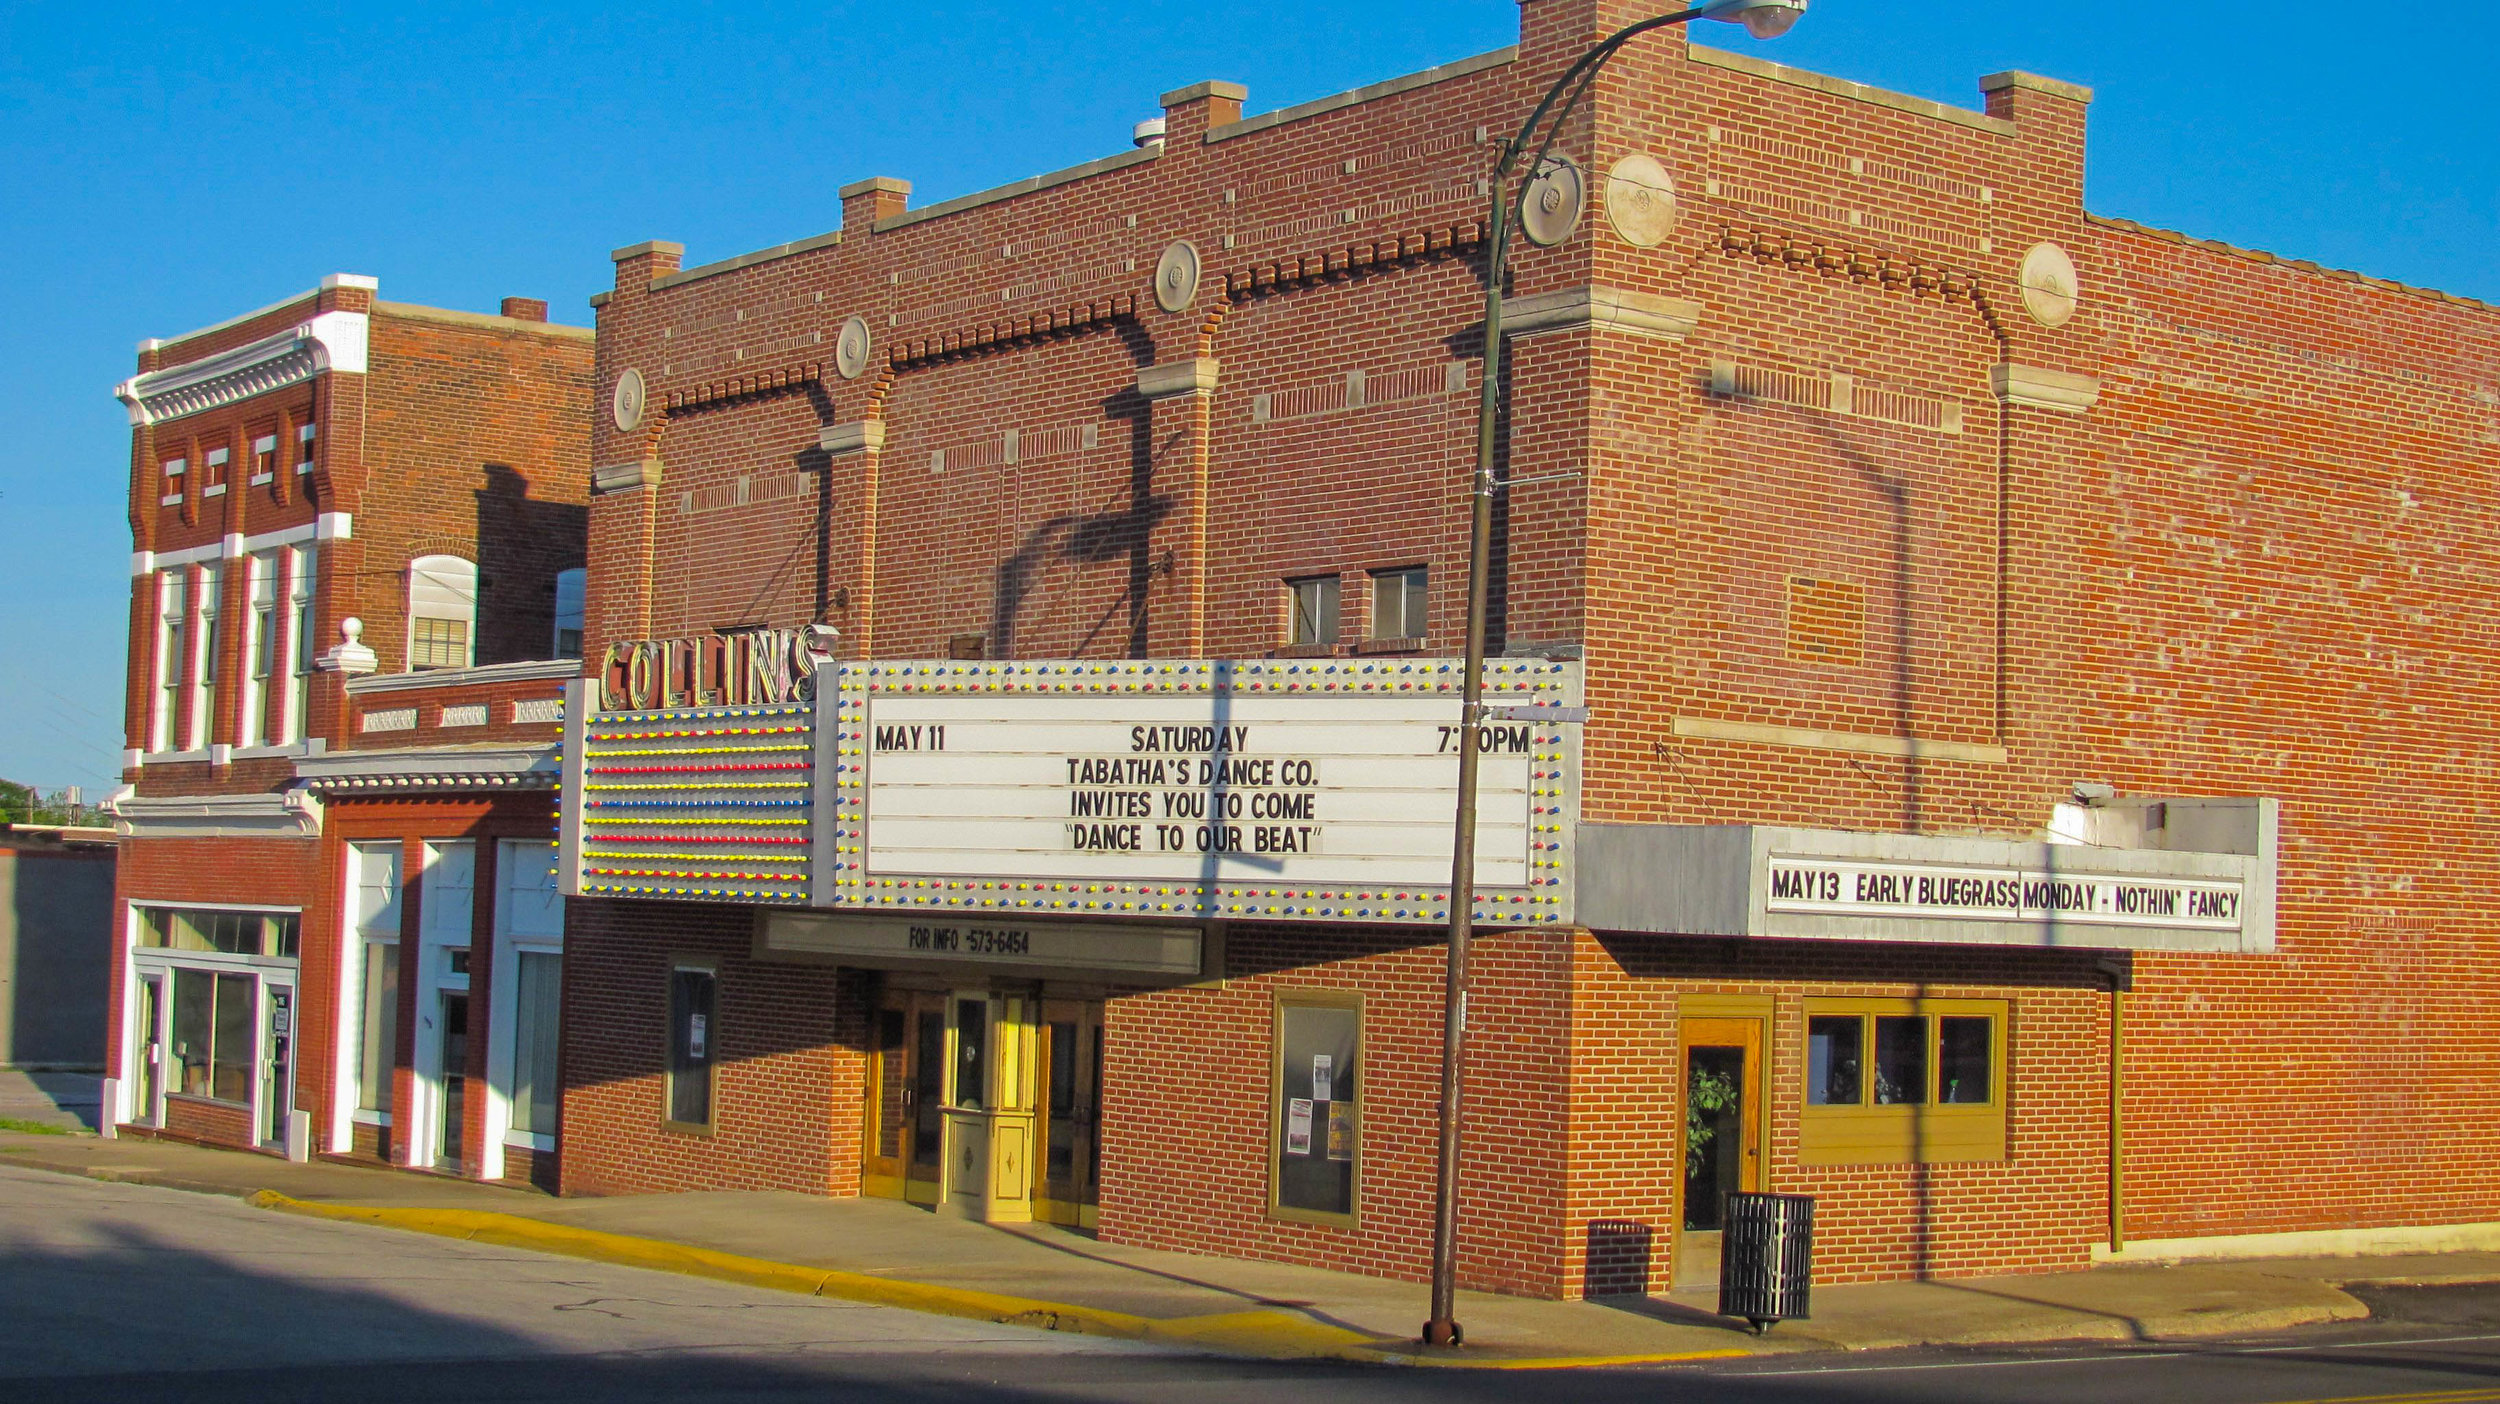 collins-theater-05132013-alr-1930.jpg